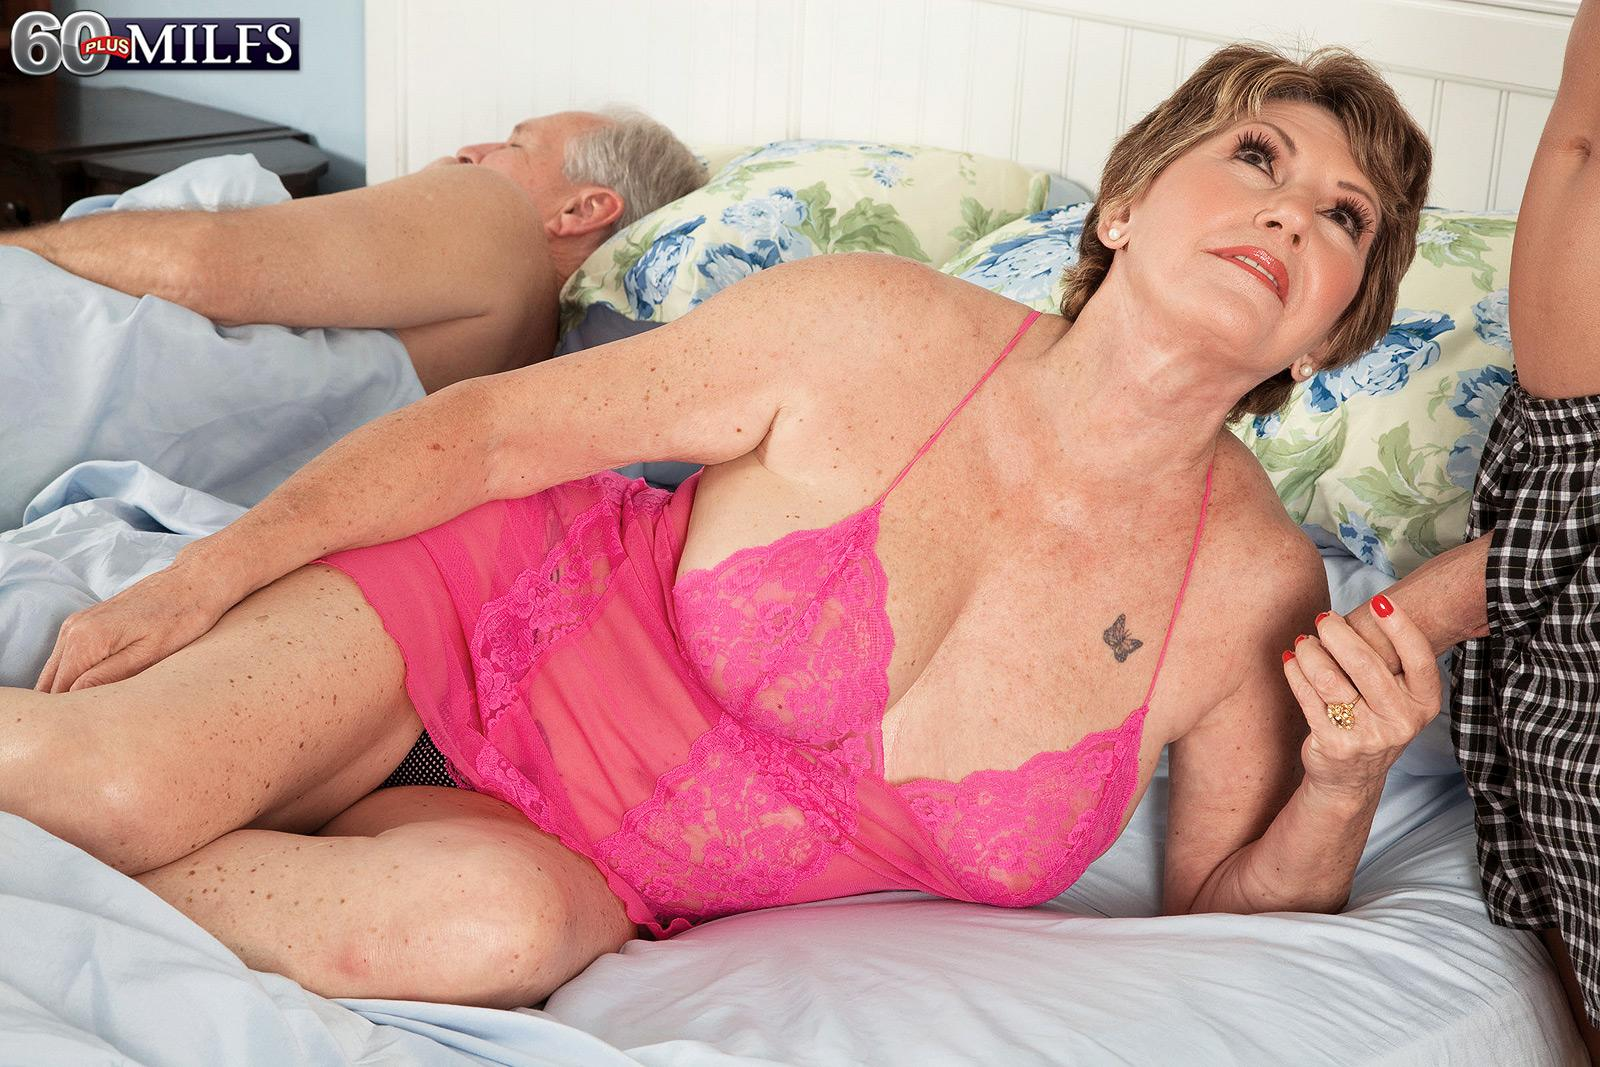 Big Titted Red Haired Grandma Bea Cummins Jerking Off Massive Boner While Cuck Spouse